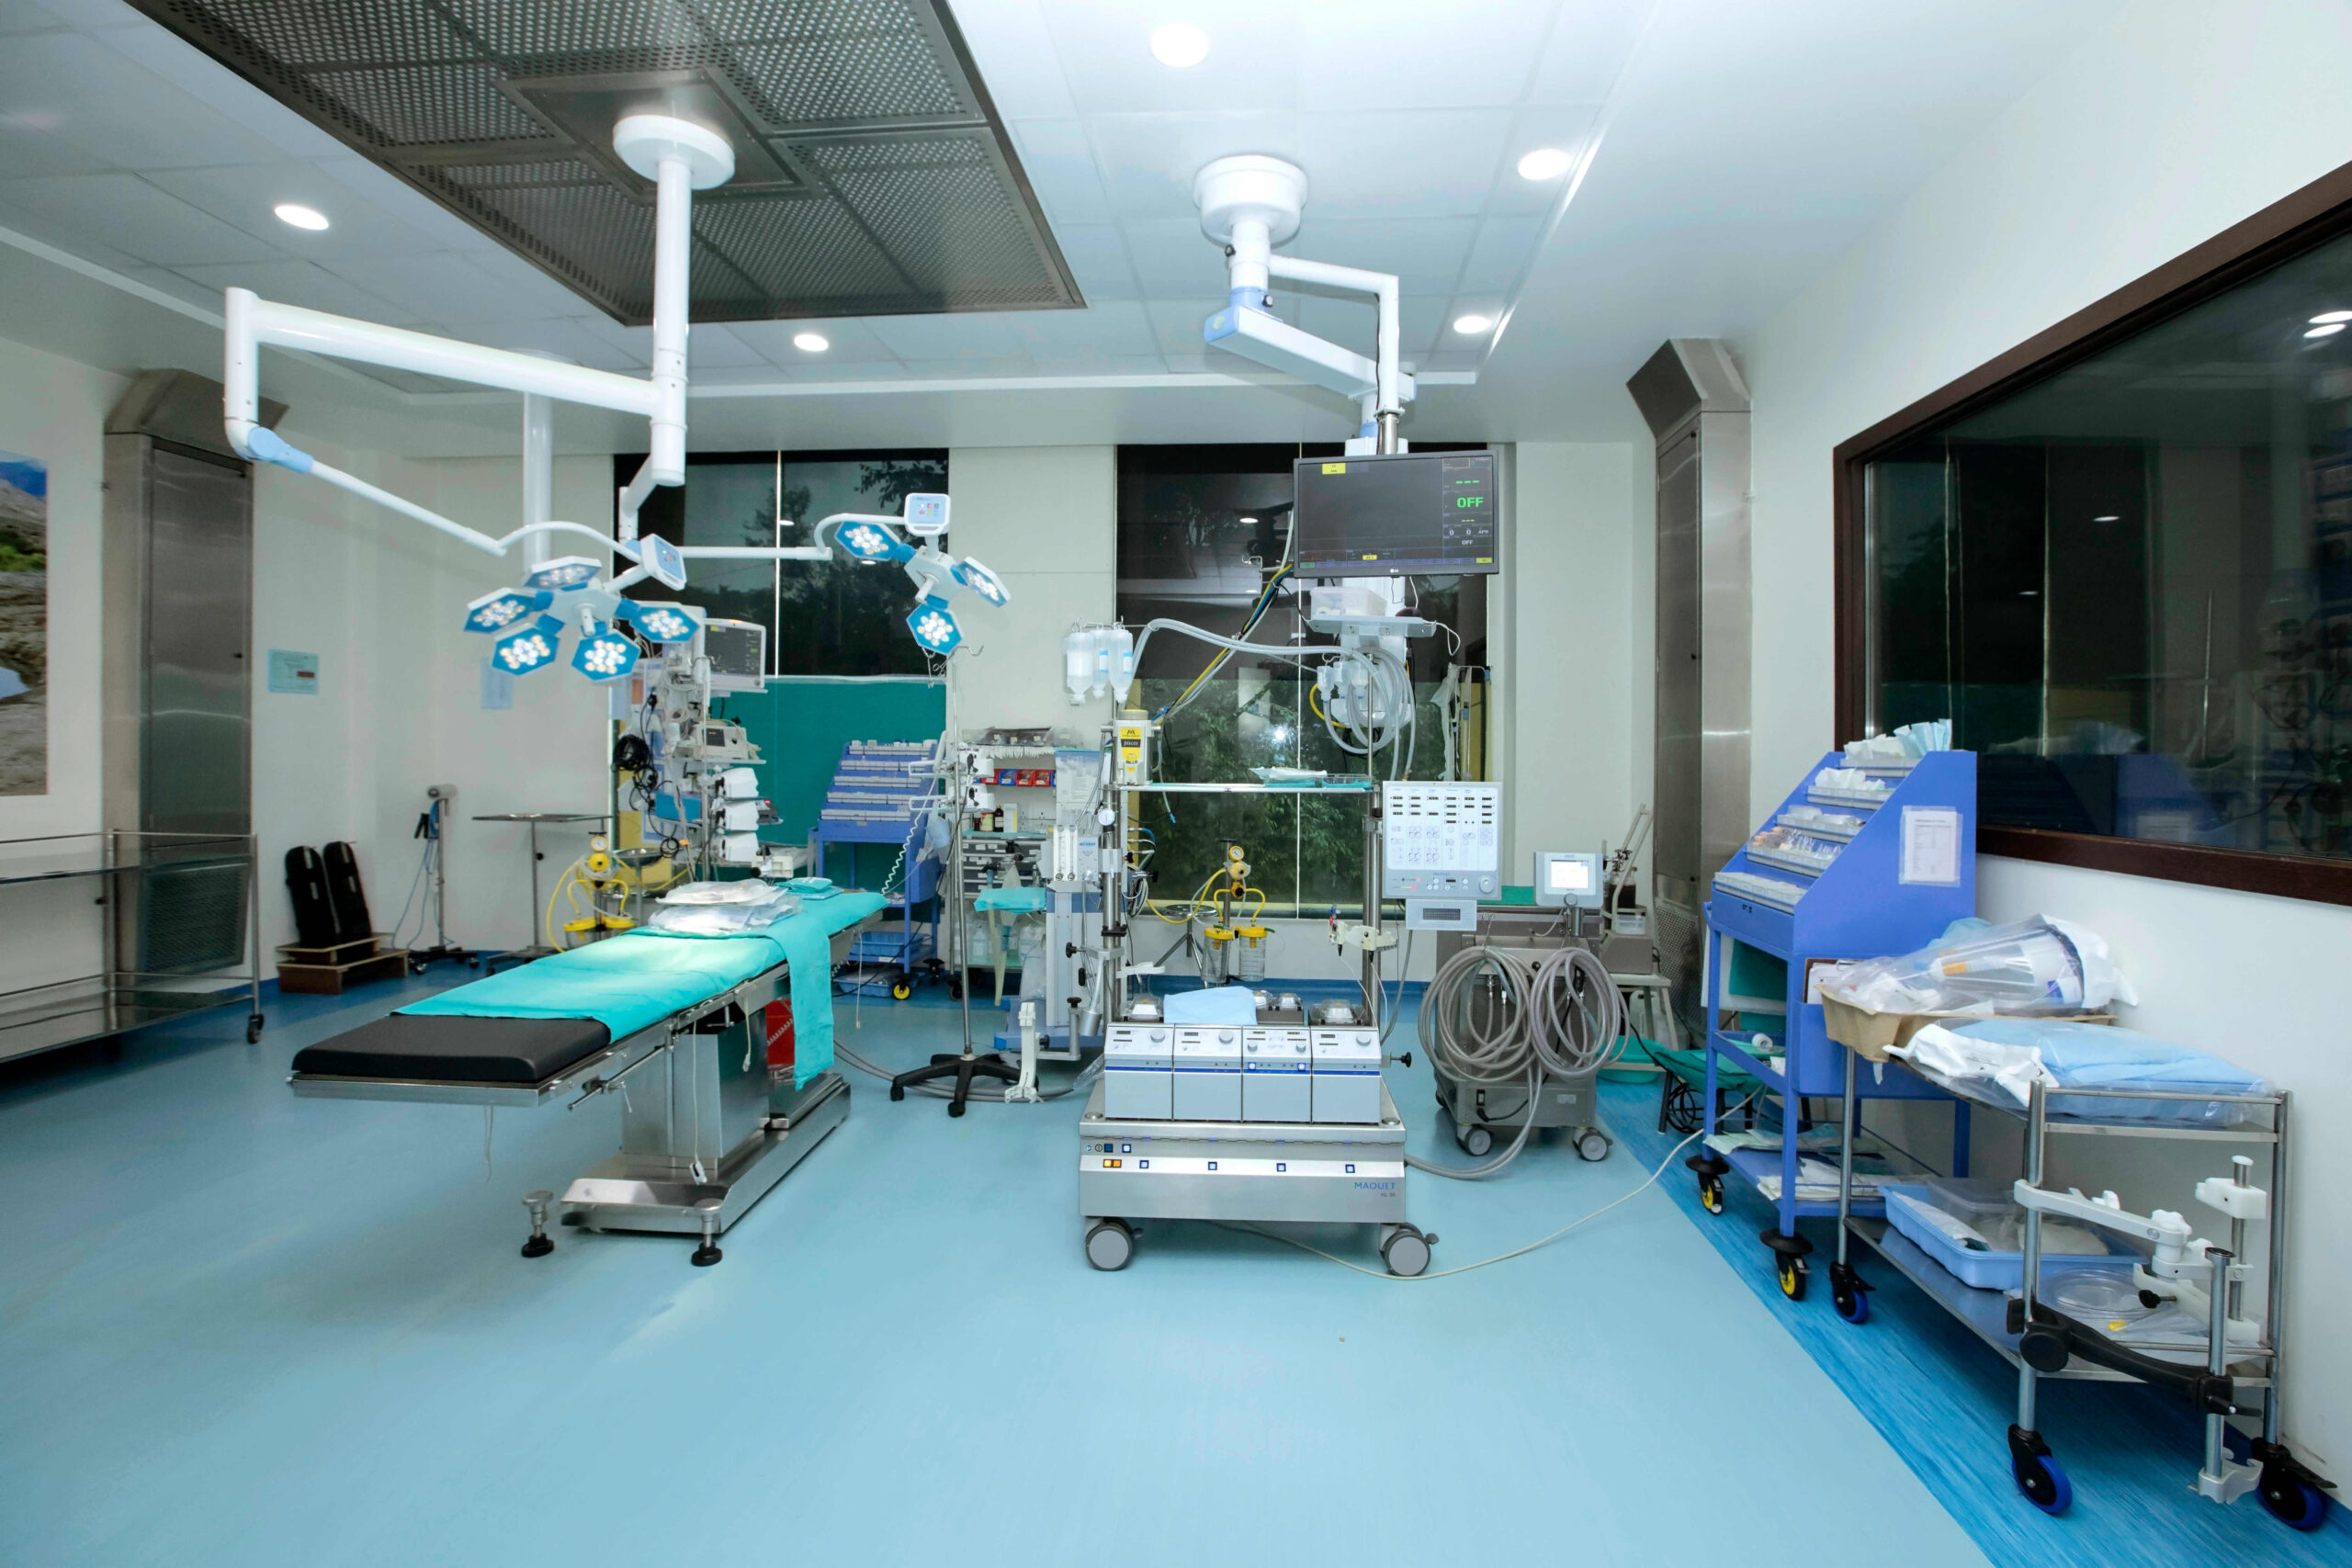 Ram Mangal Heart Foundation Surgery Room